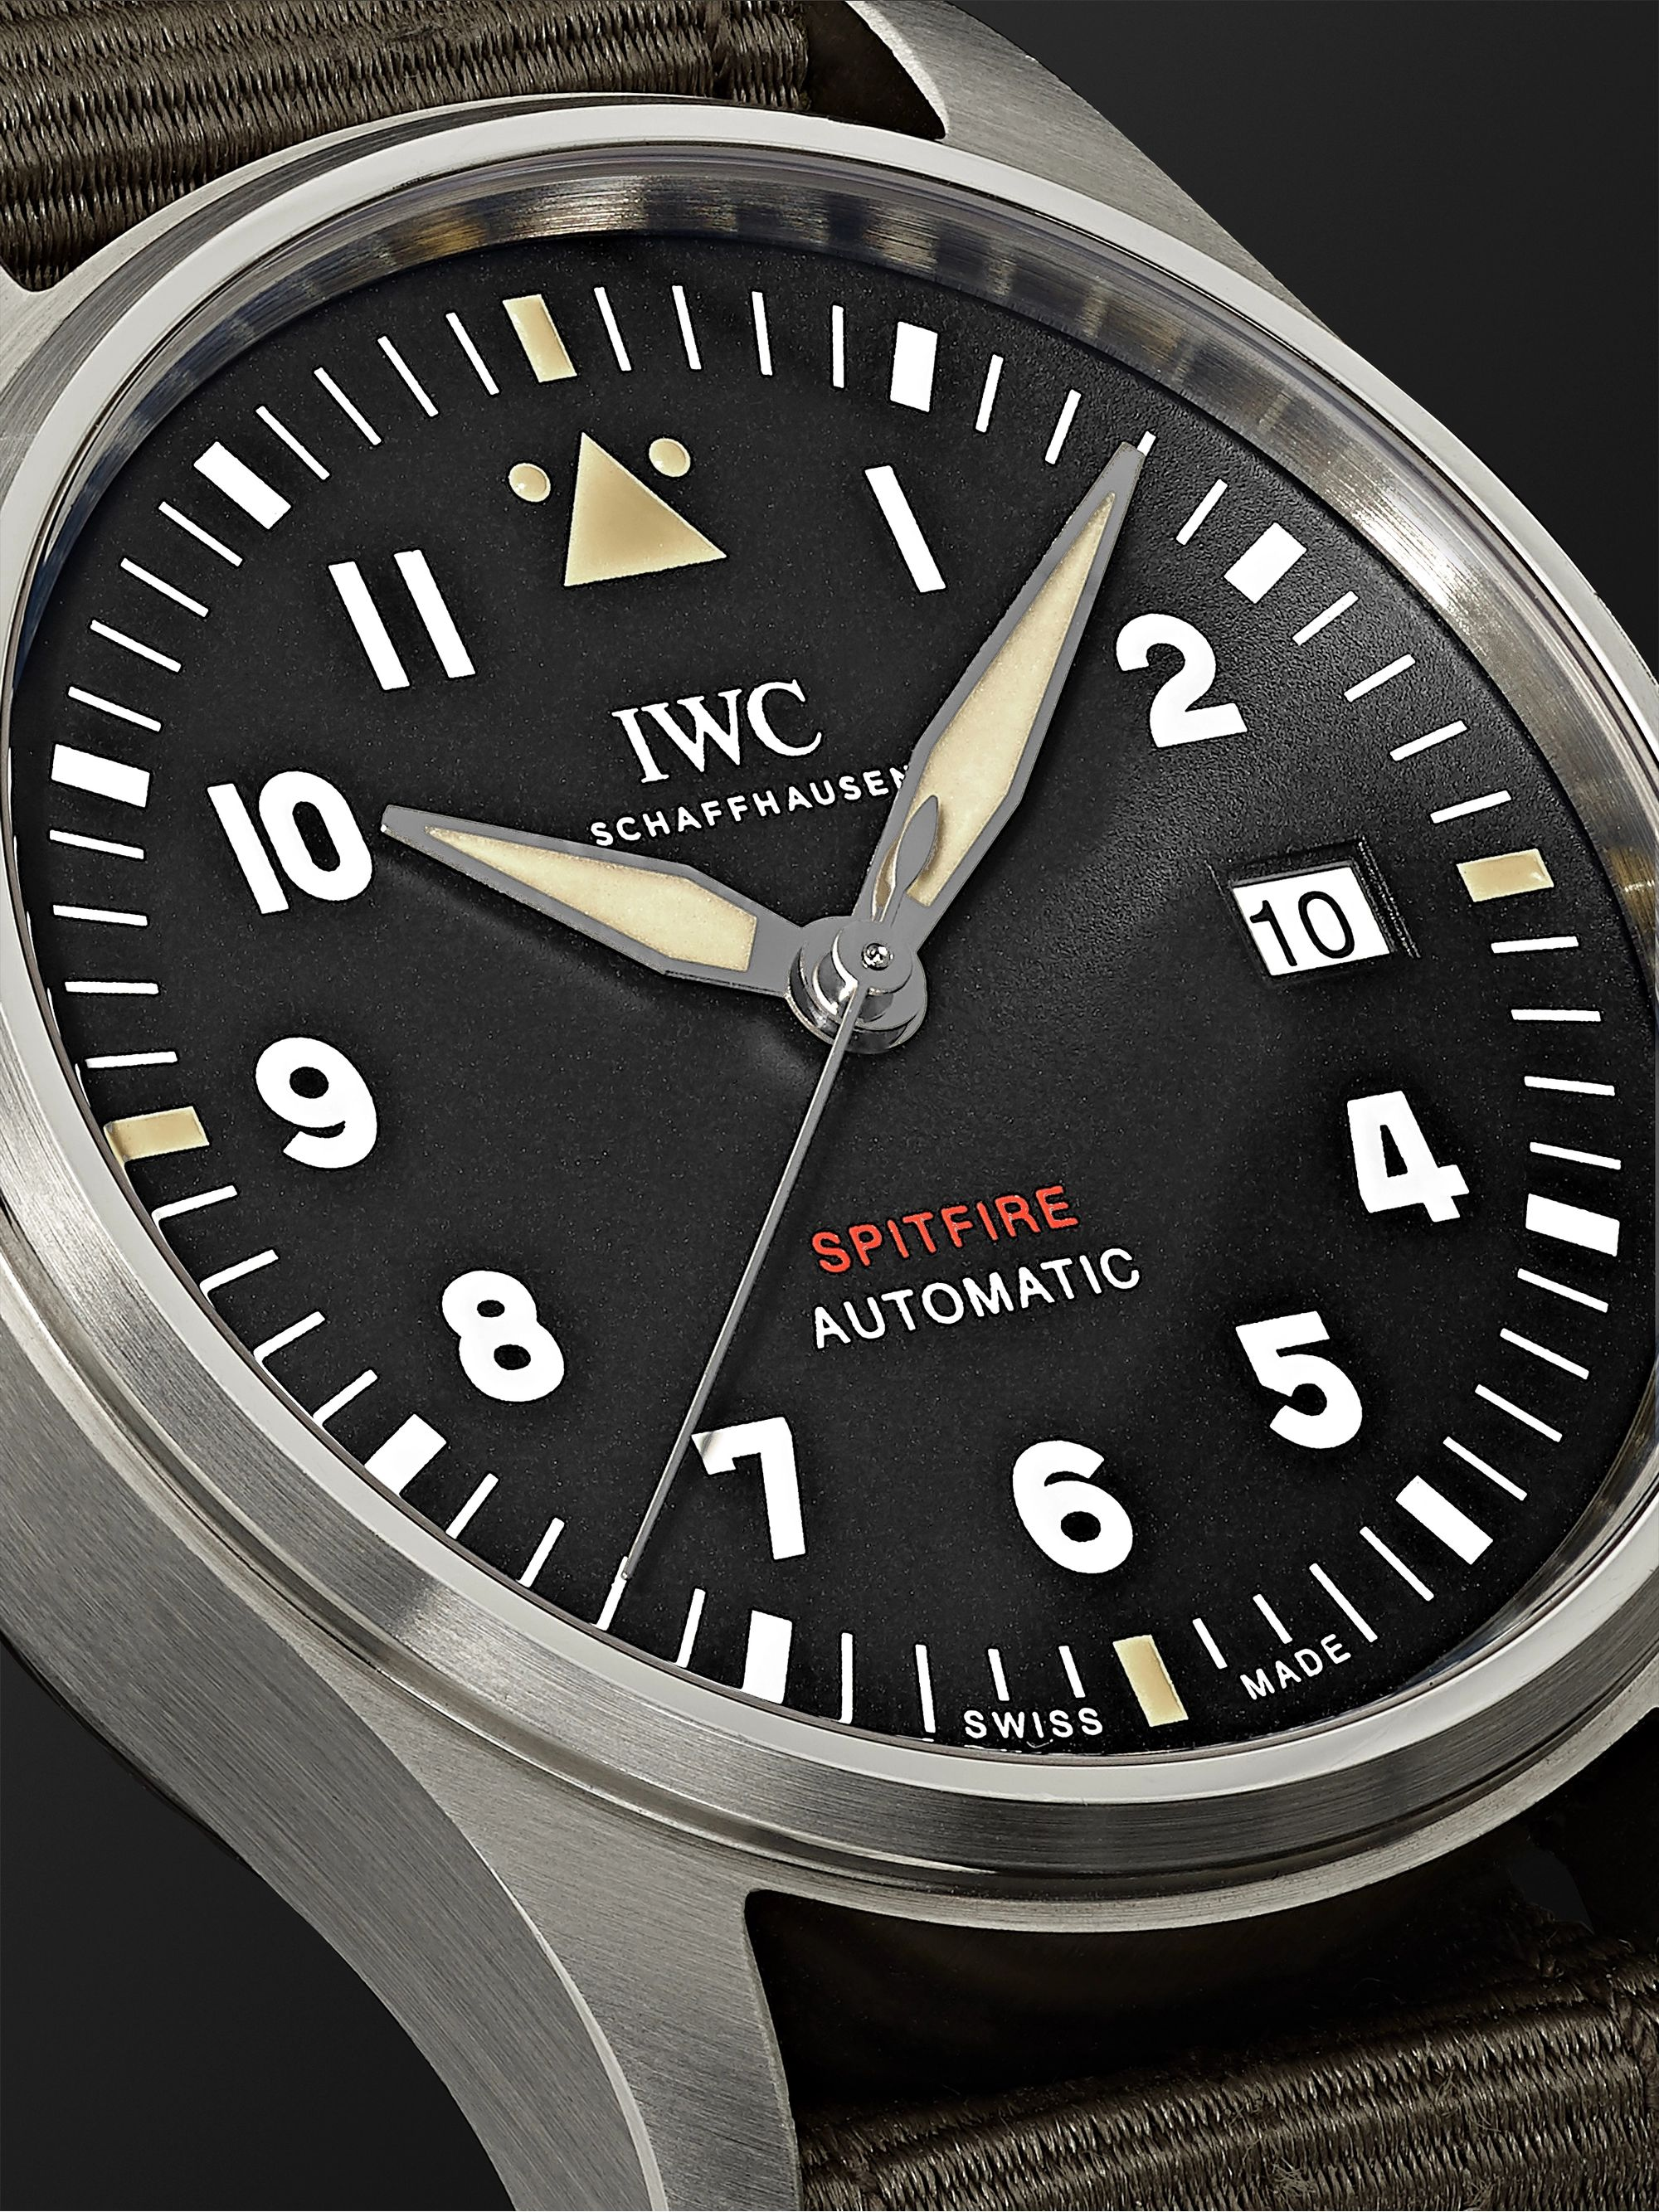 IWC SCHAFFHAUSEN Pilot's Spitfire Automatic 39mm Stainless Steel and Webbing Watch, Ref. No. IW326801